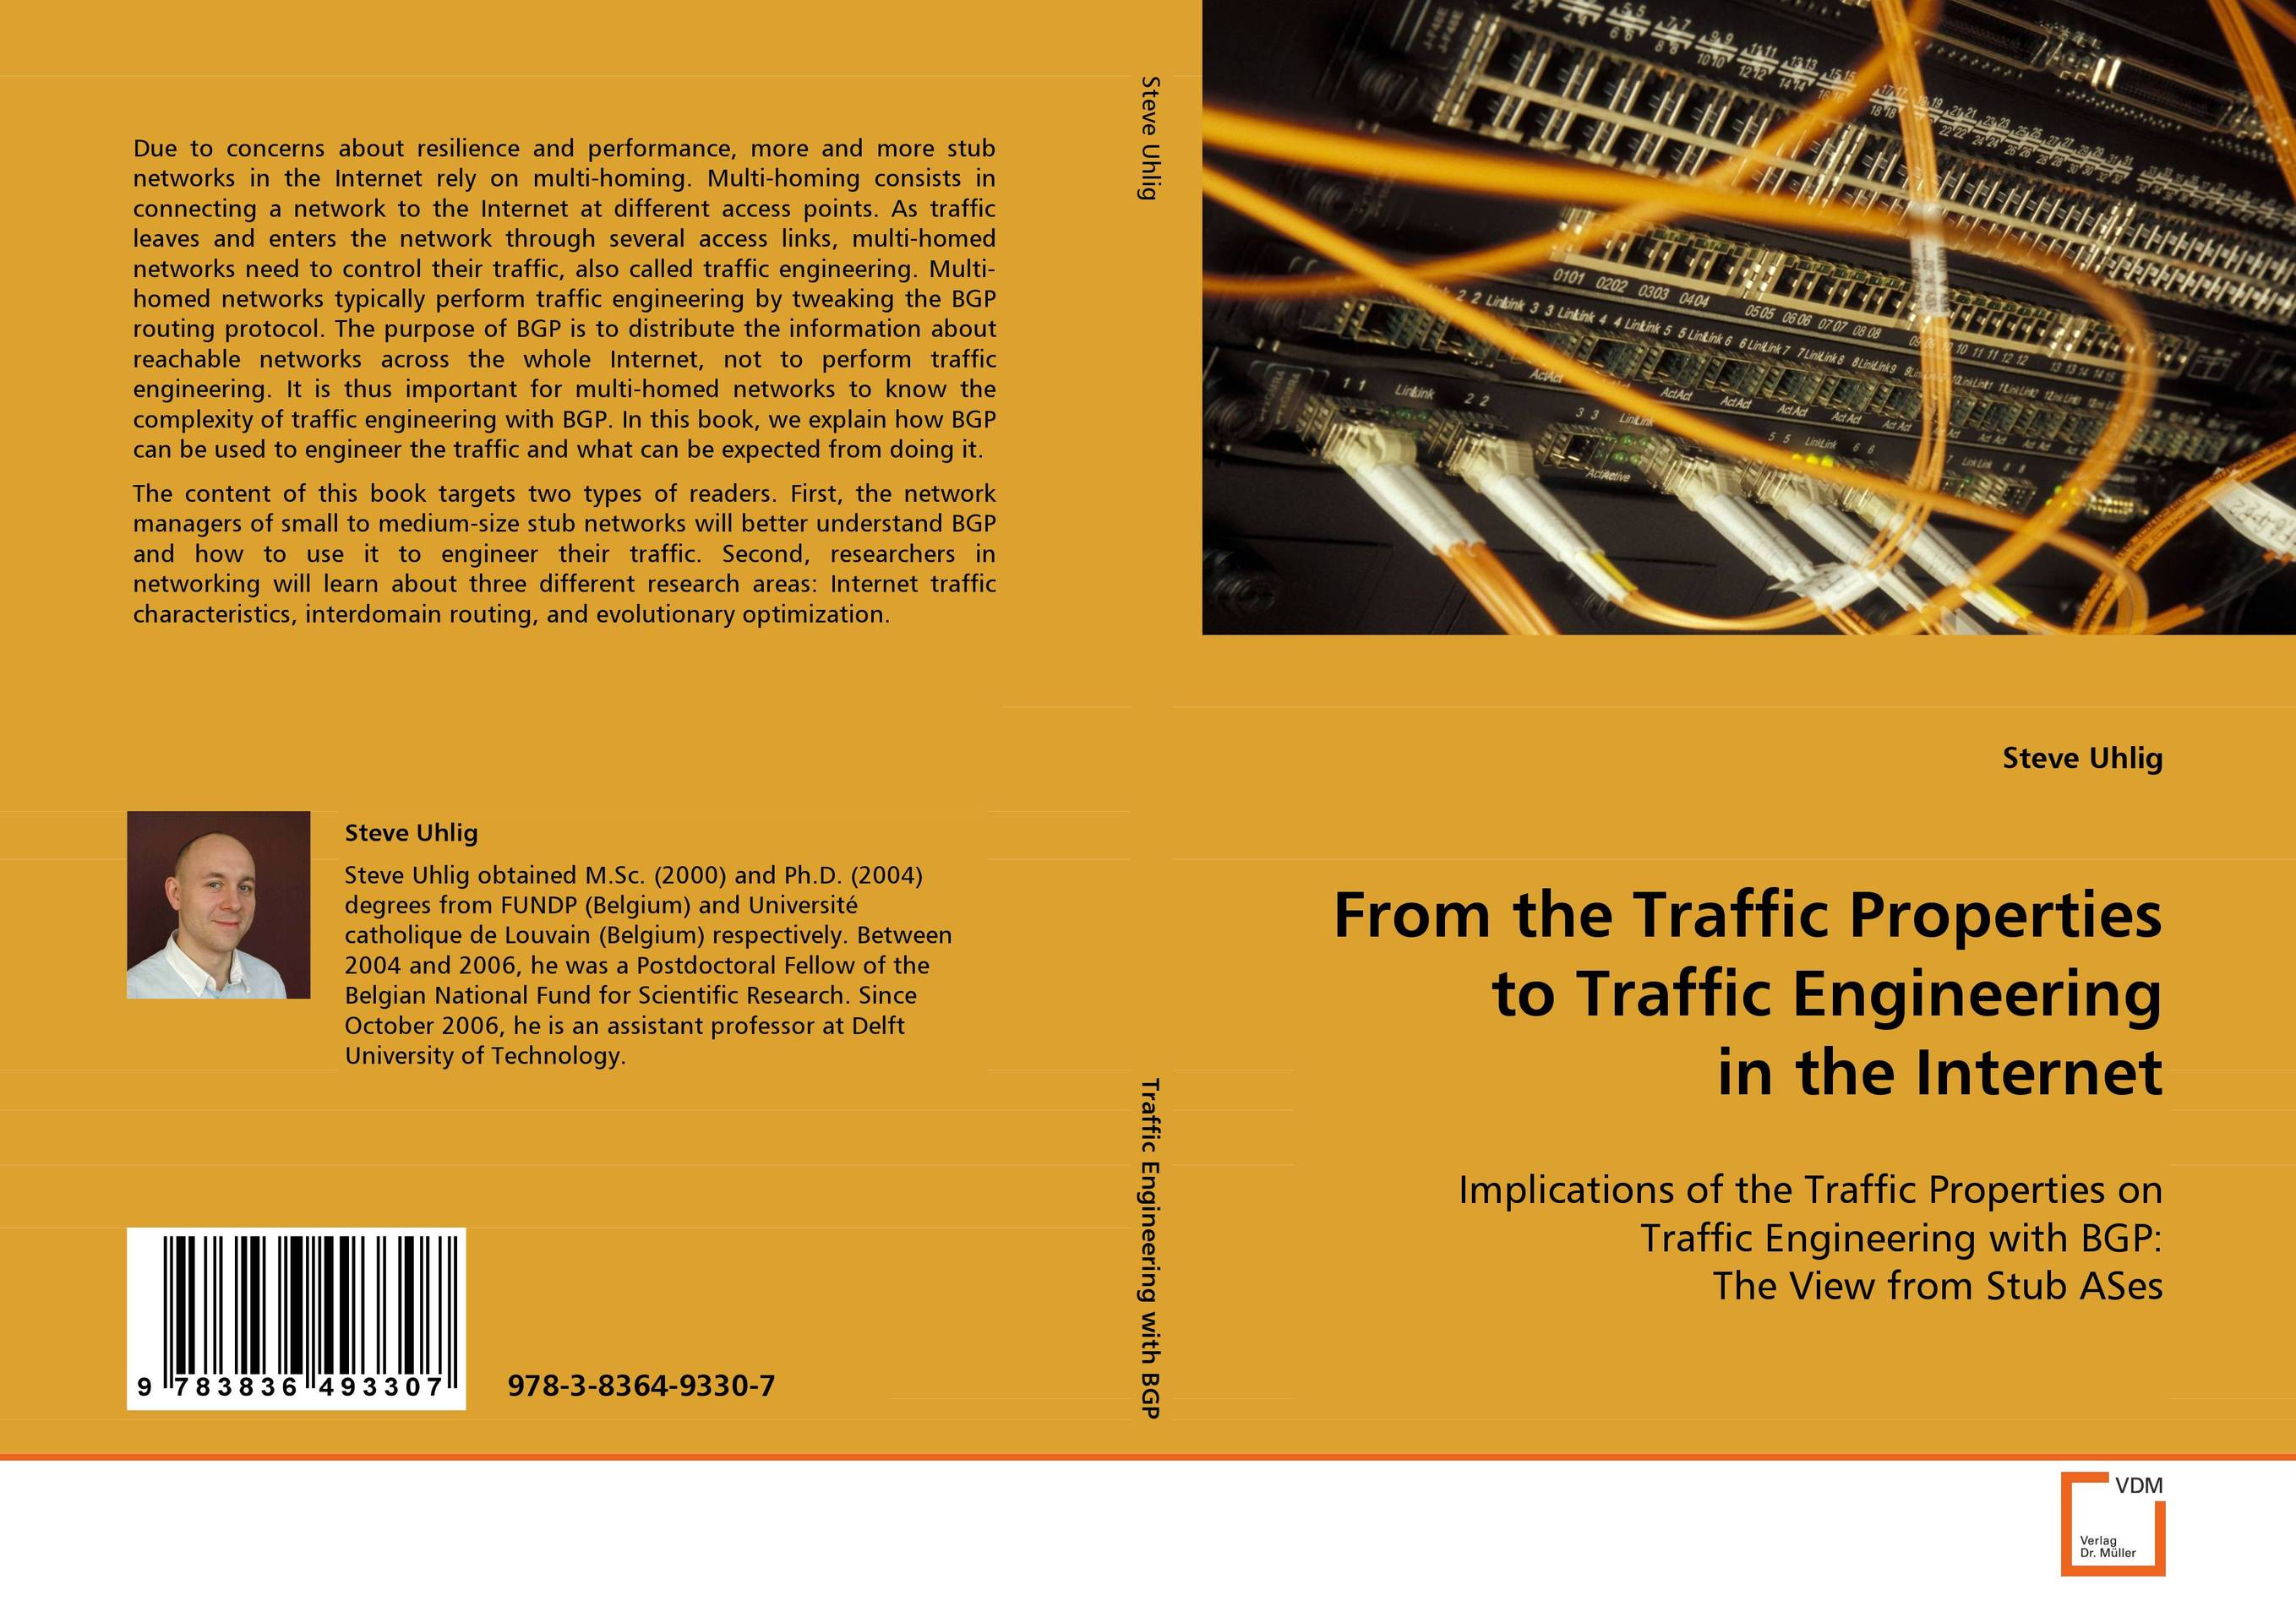 From the Traffic Properties to Traffic Engineering inthe Internet